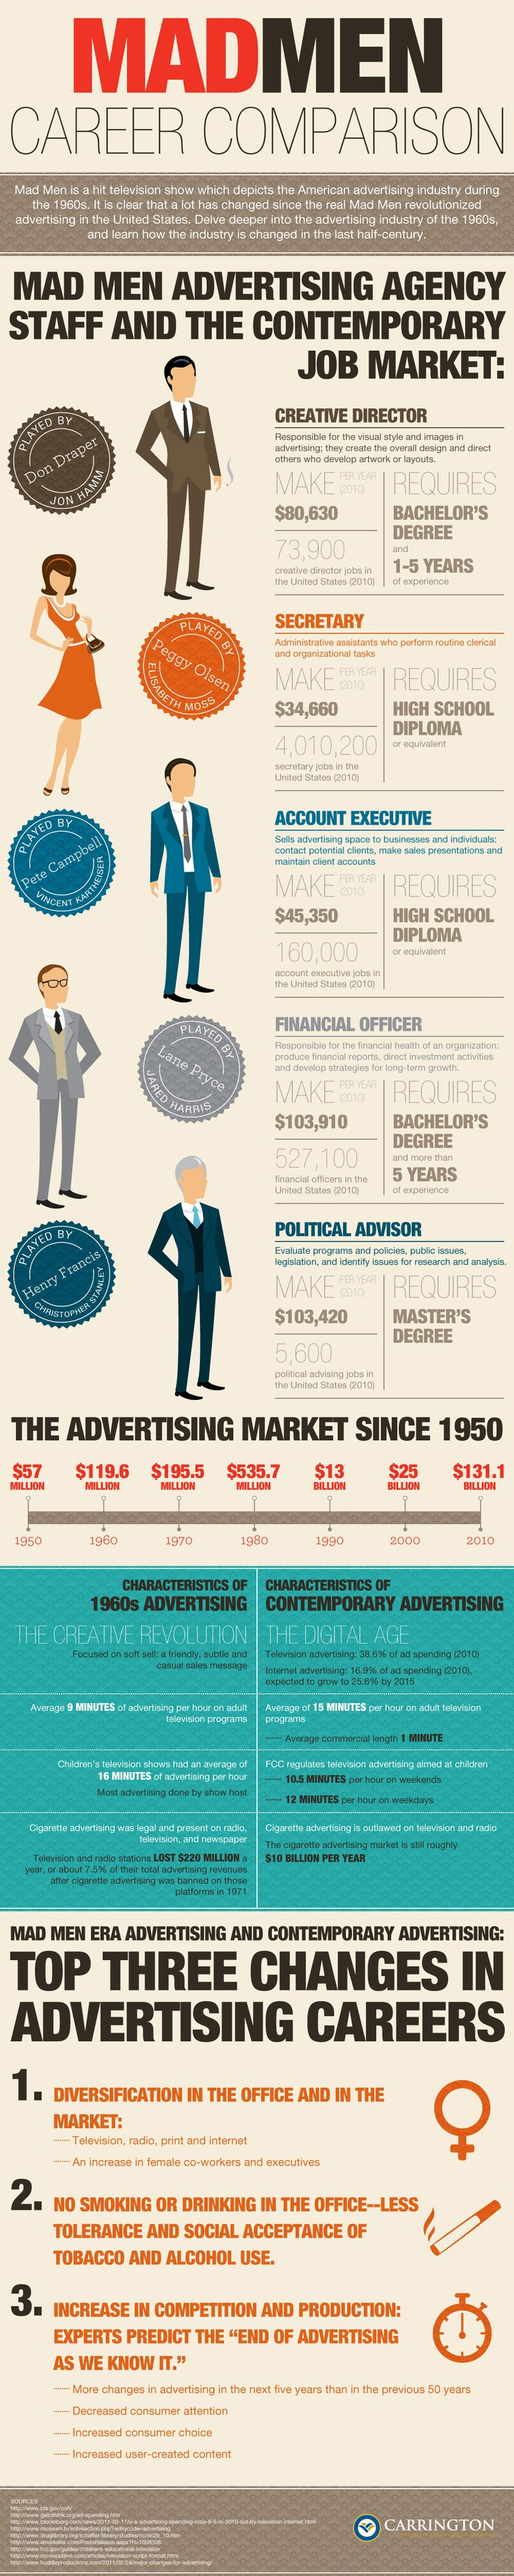 It's one of the greatest TV show hits theming the American advertising industry in 60′s. On this sheet you will see an illustration of major changes happened in the advertising industry during the last 50 years backed with the Mad Men series spirit.